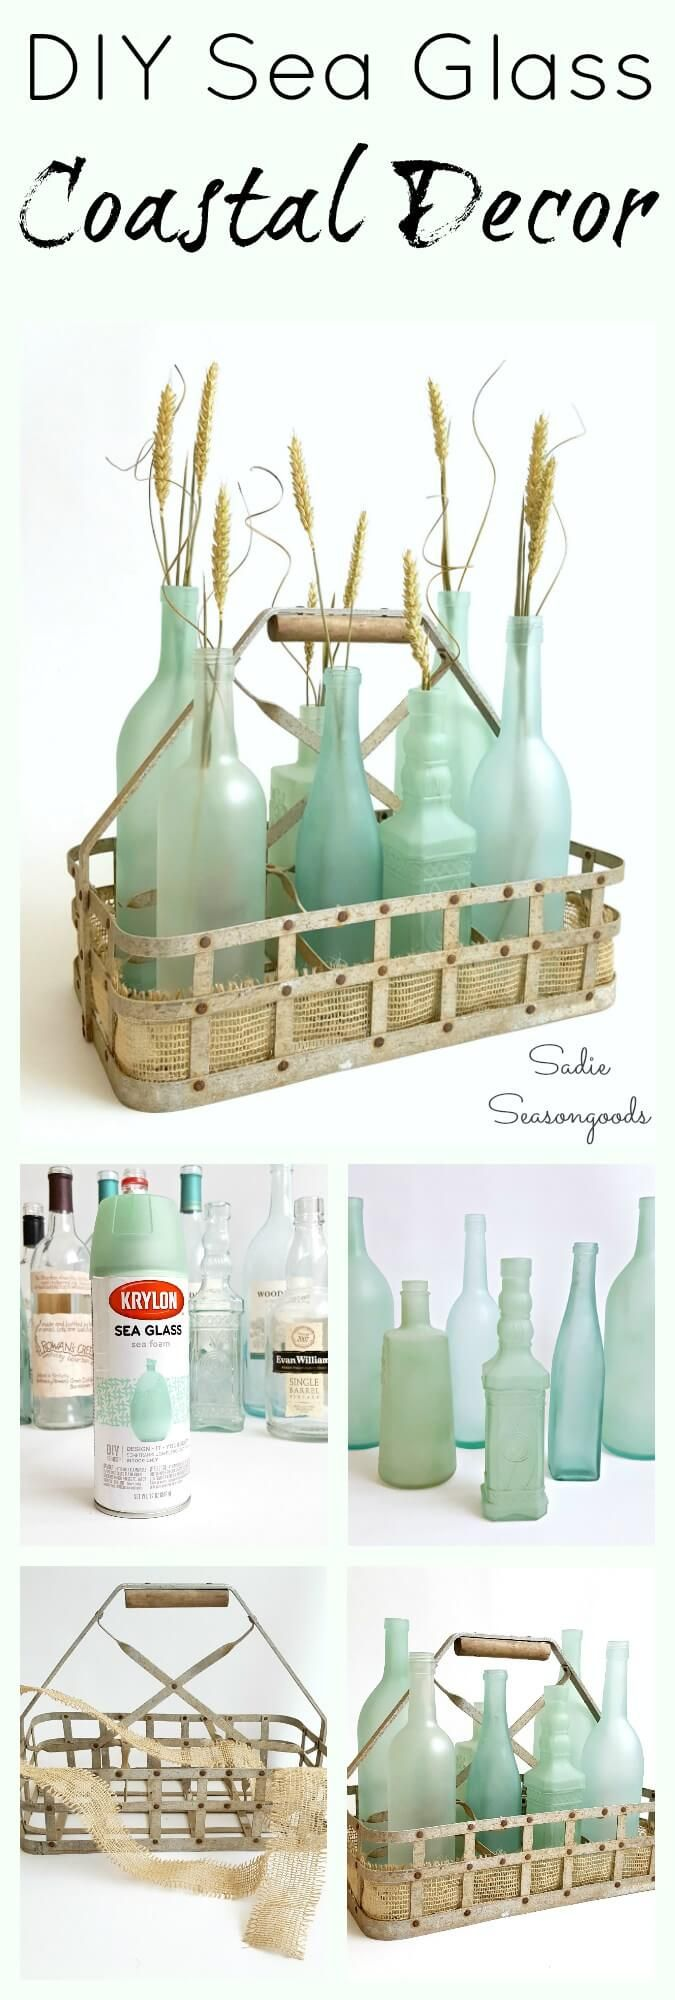 Sea Glass Planters in a Basket